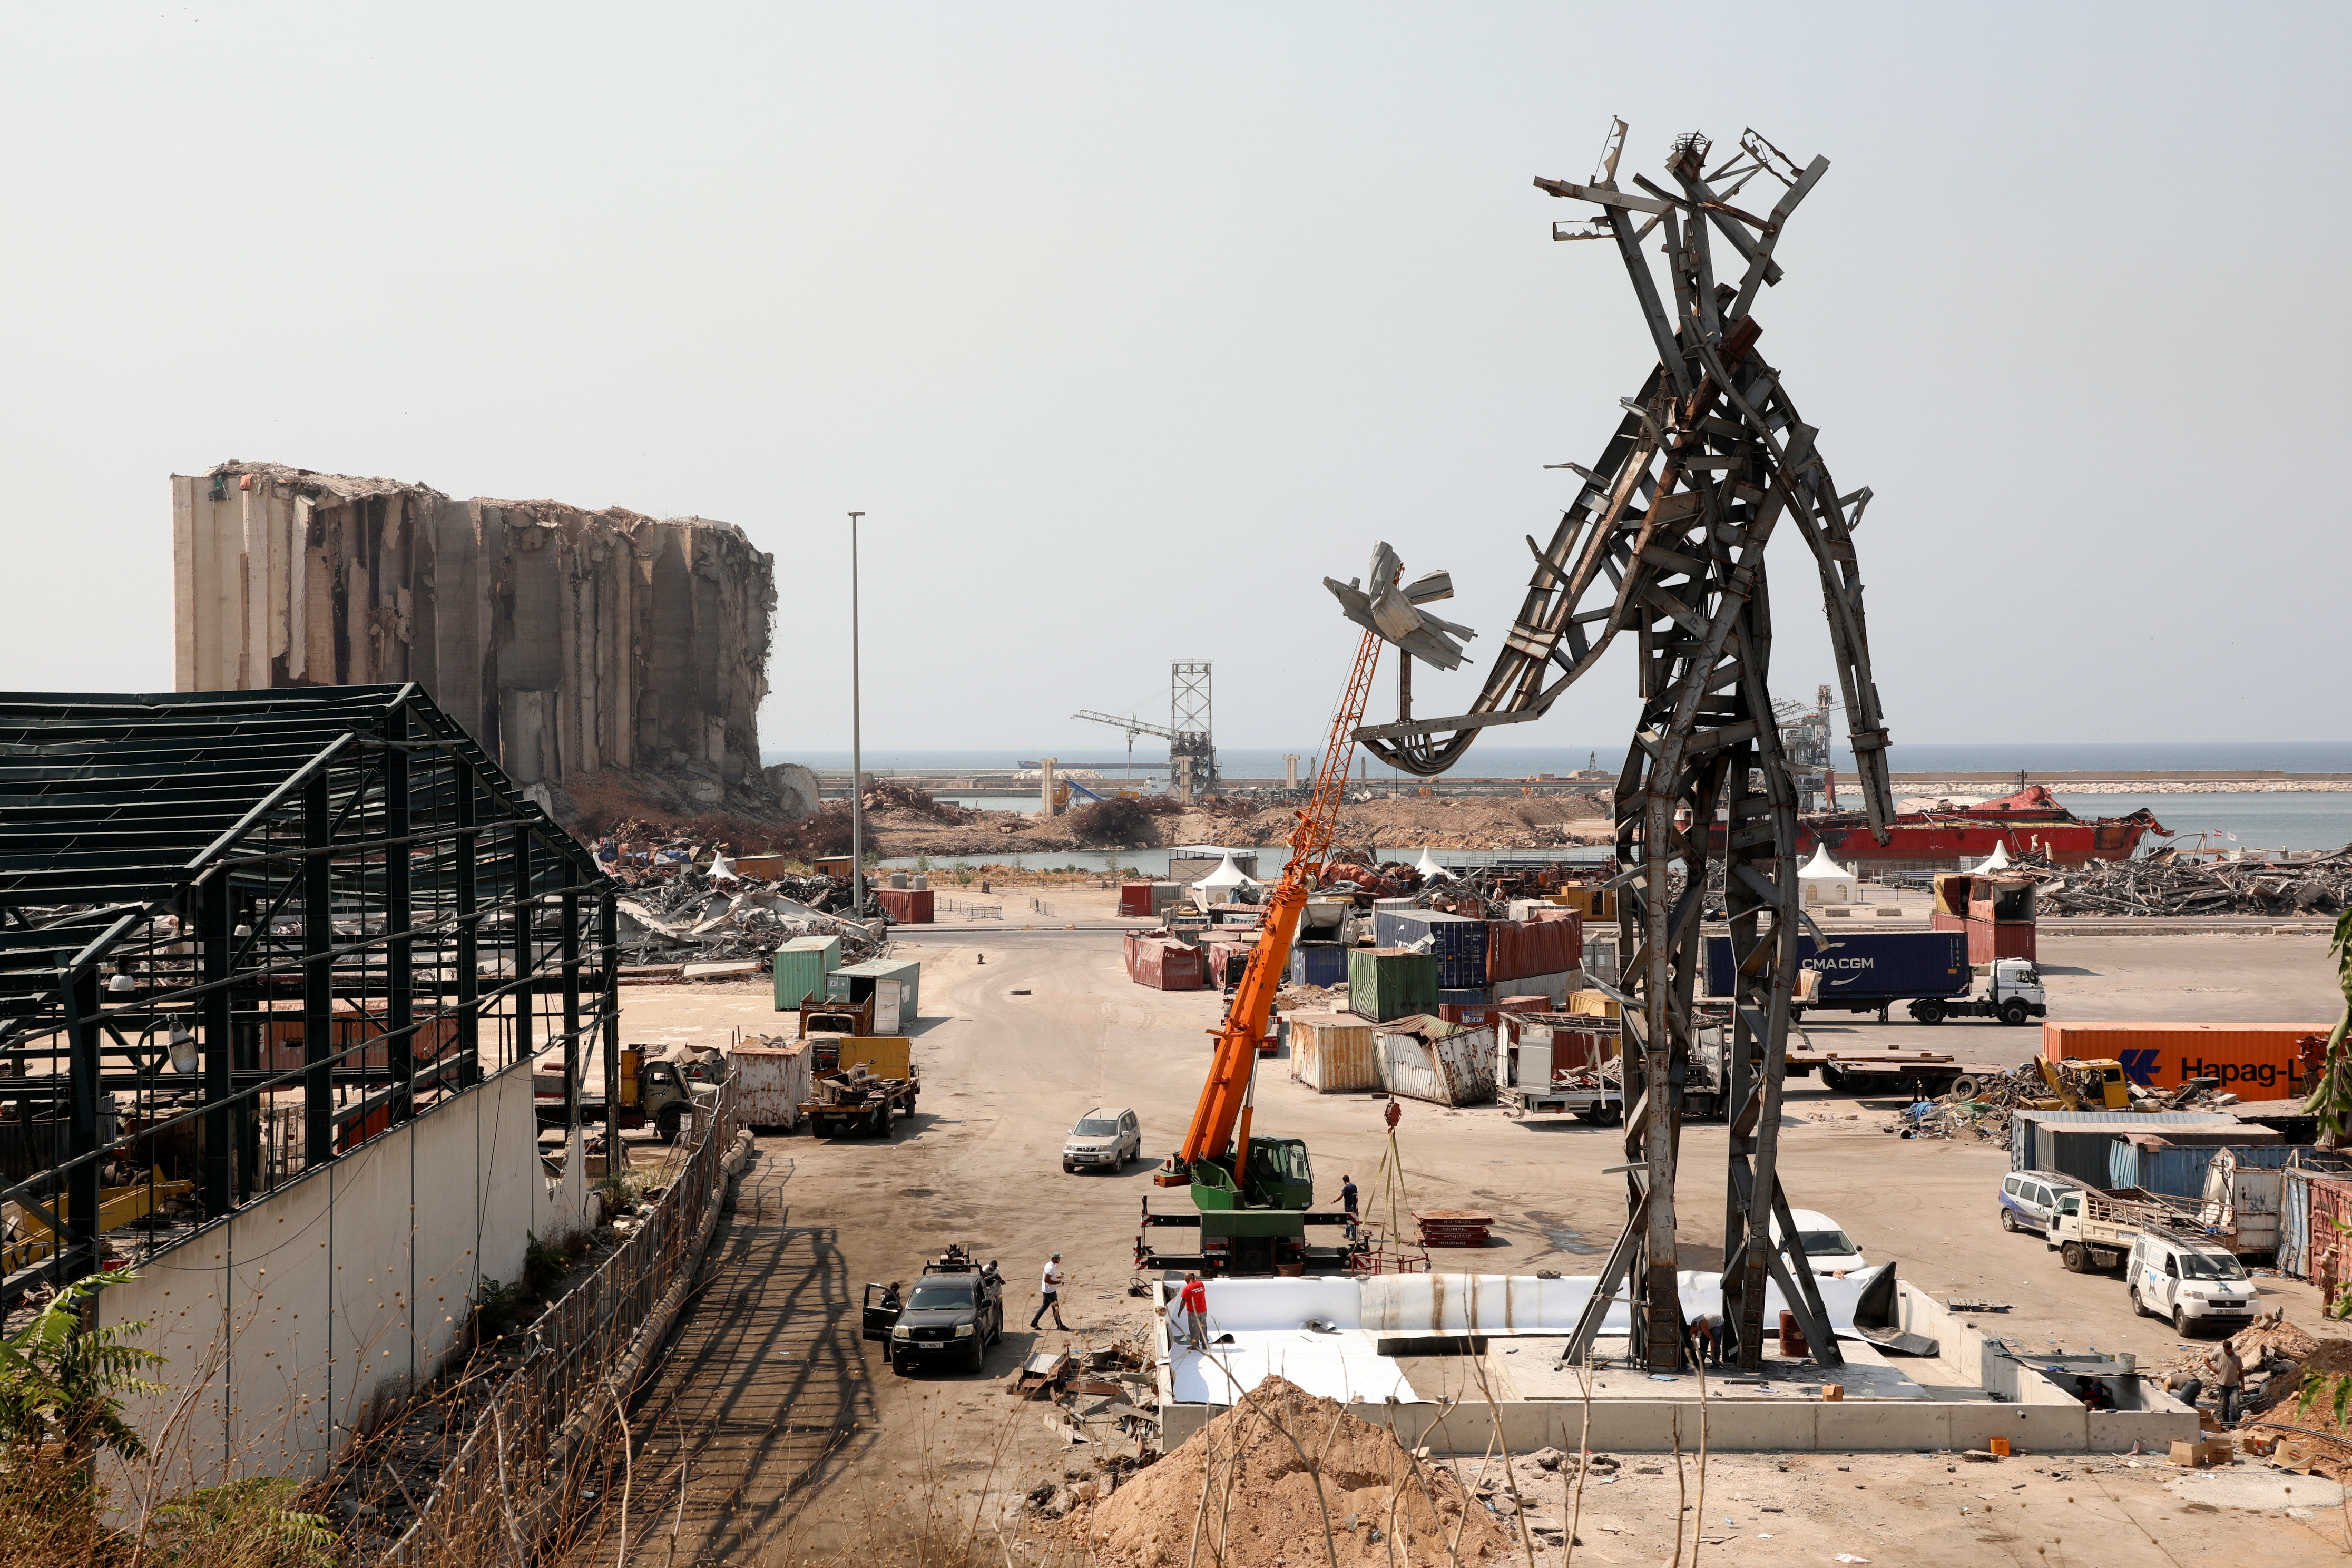 The Gesture, a 25-meter sculpture by Lebanese architect Nadim Karam to commemorate victims of last year's Beirut blast, is seen at the capital's port in Lebanon, July 30, 2021. REUTERS/Mohamed Azakir